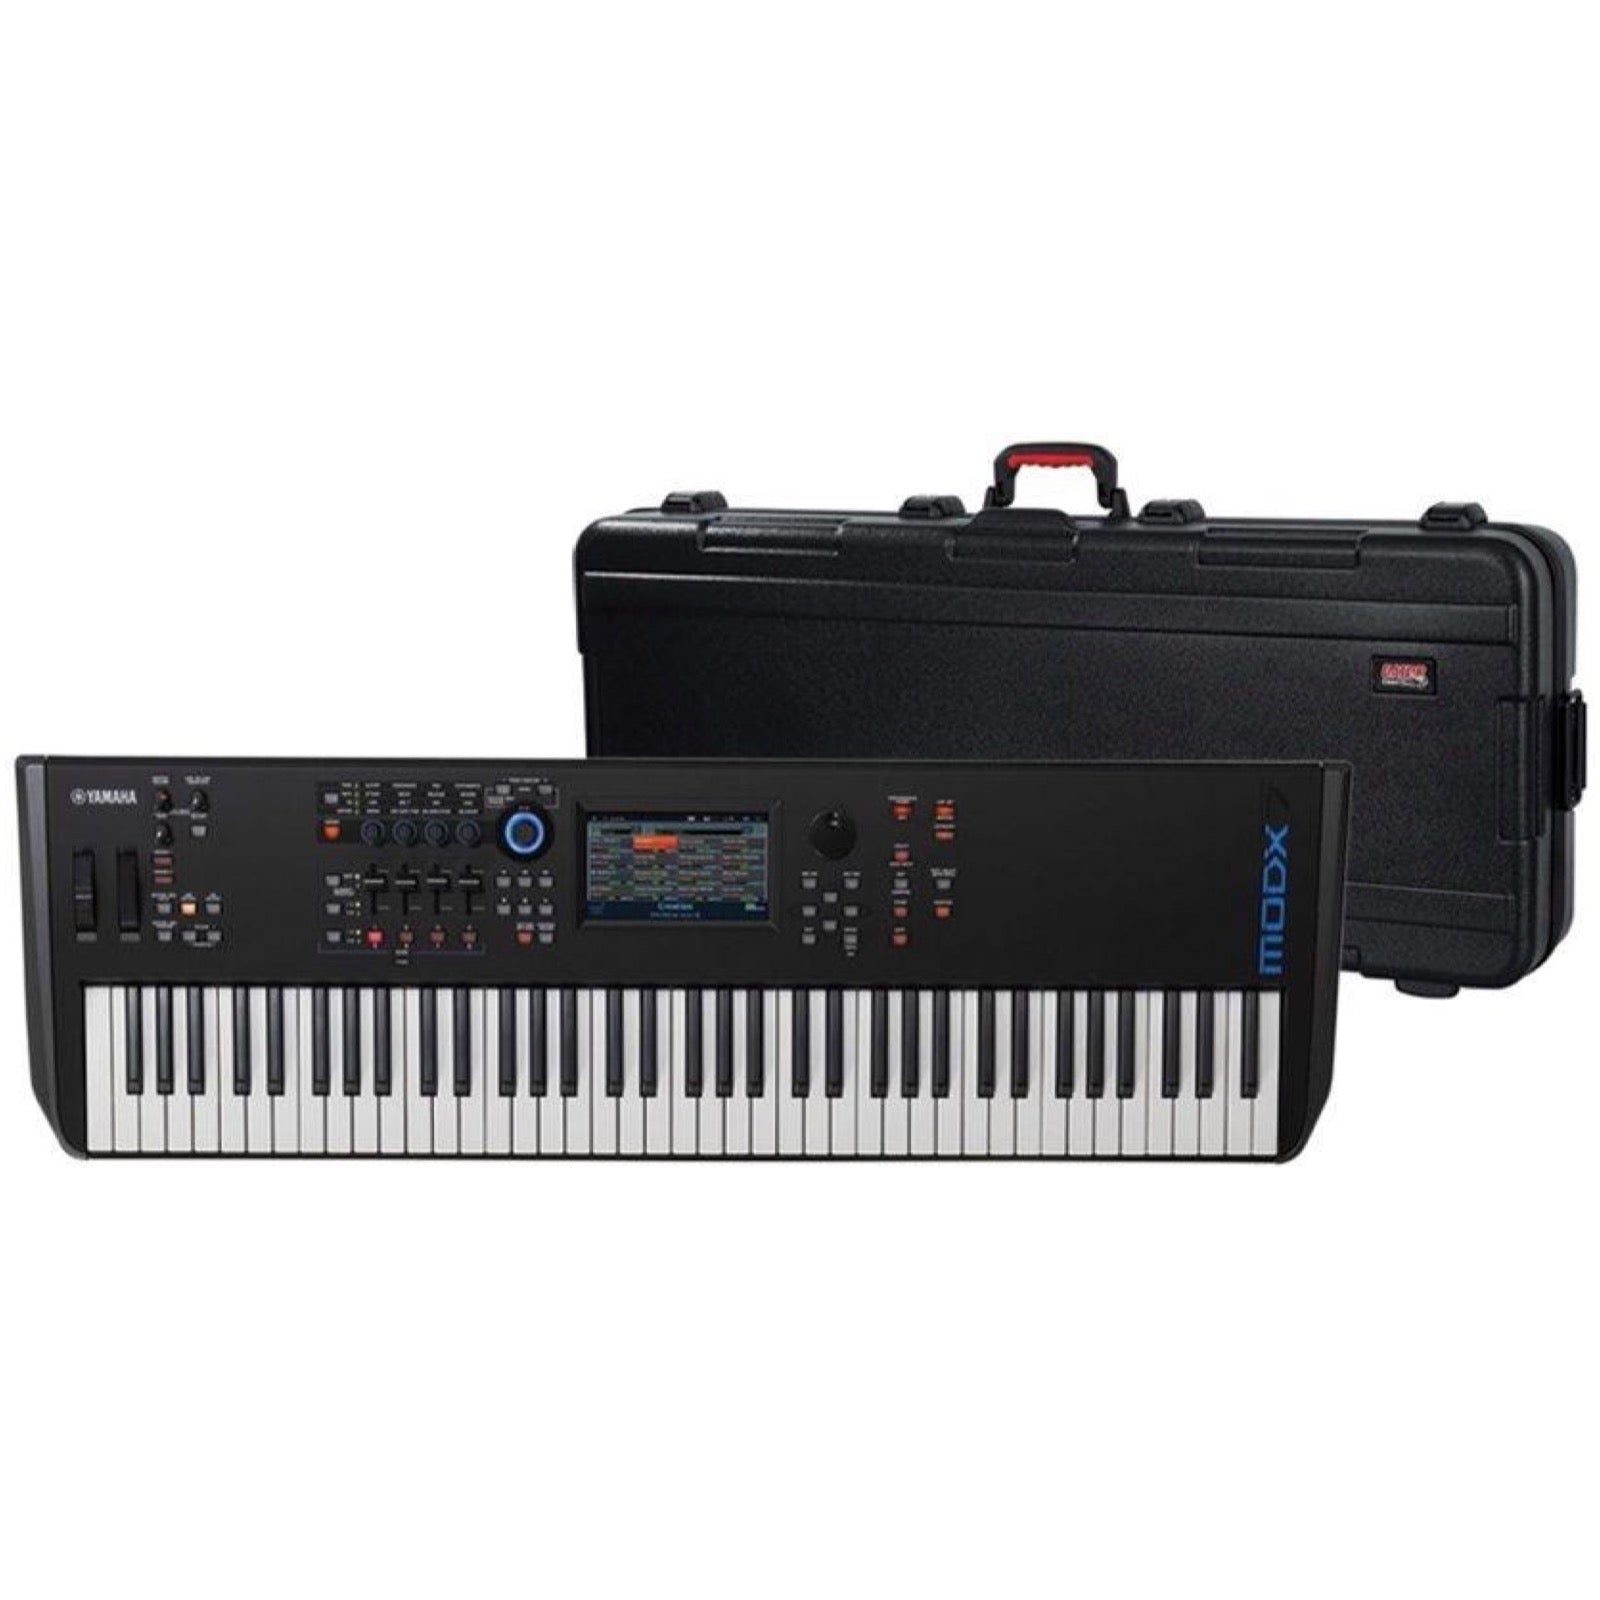 Yamaha MODX7 Keyboard Synthesizer, 76-Key, with Gator Case